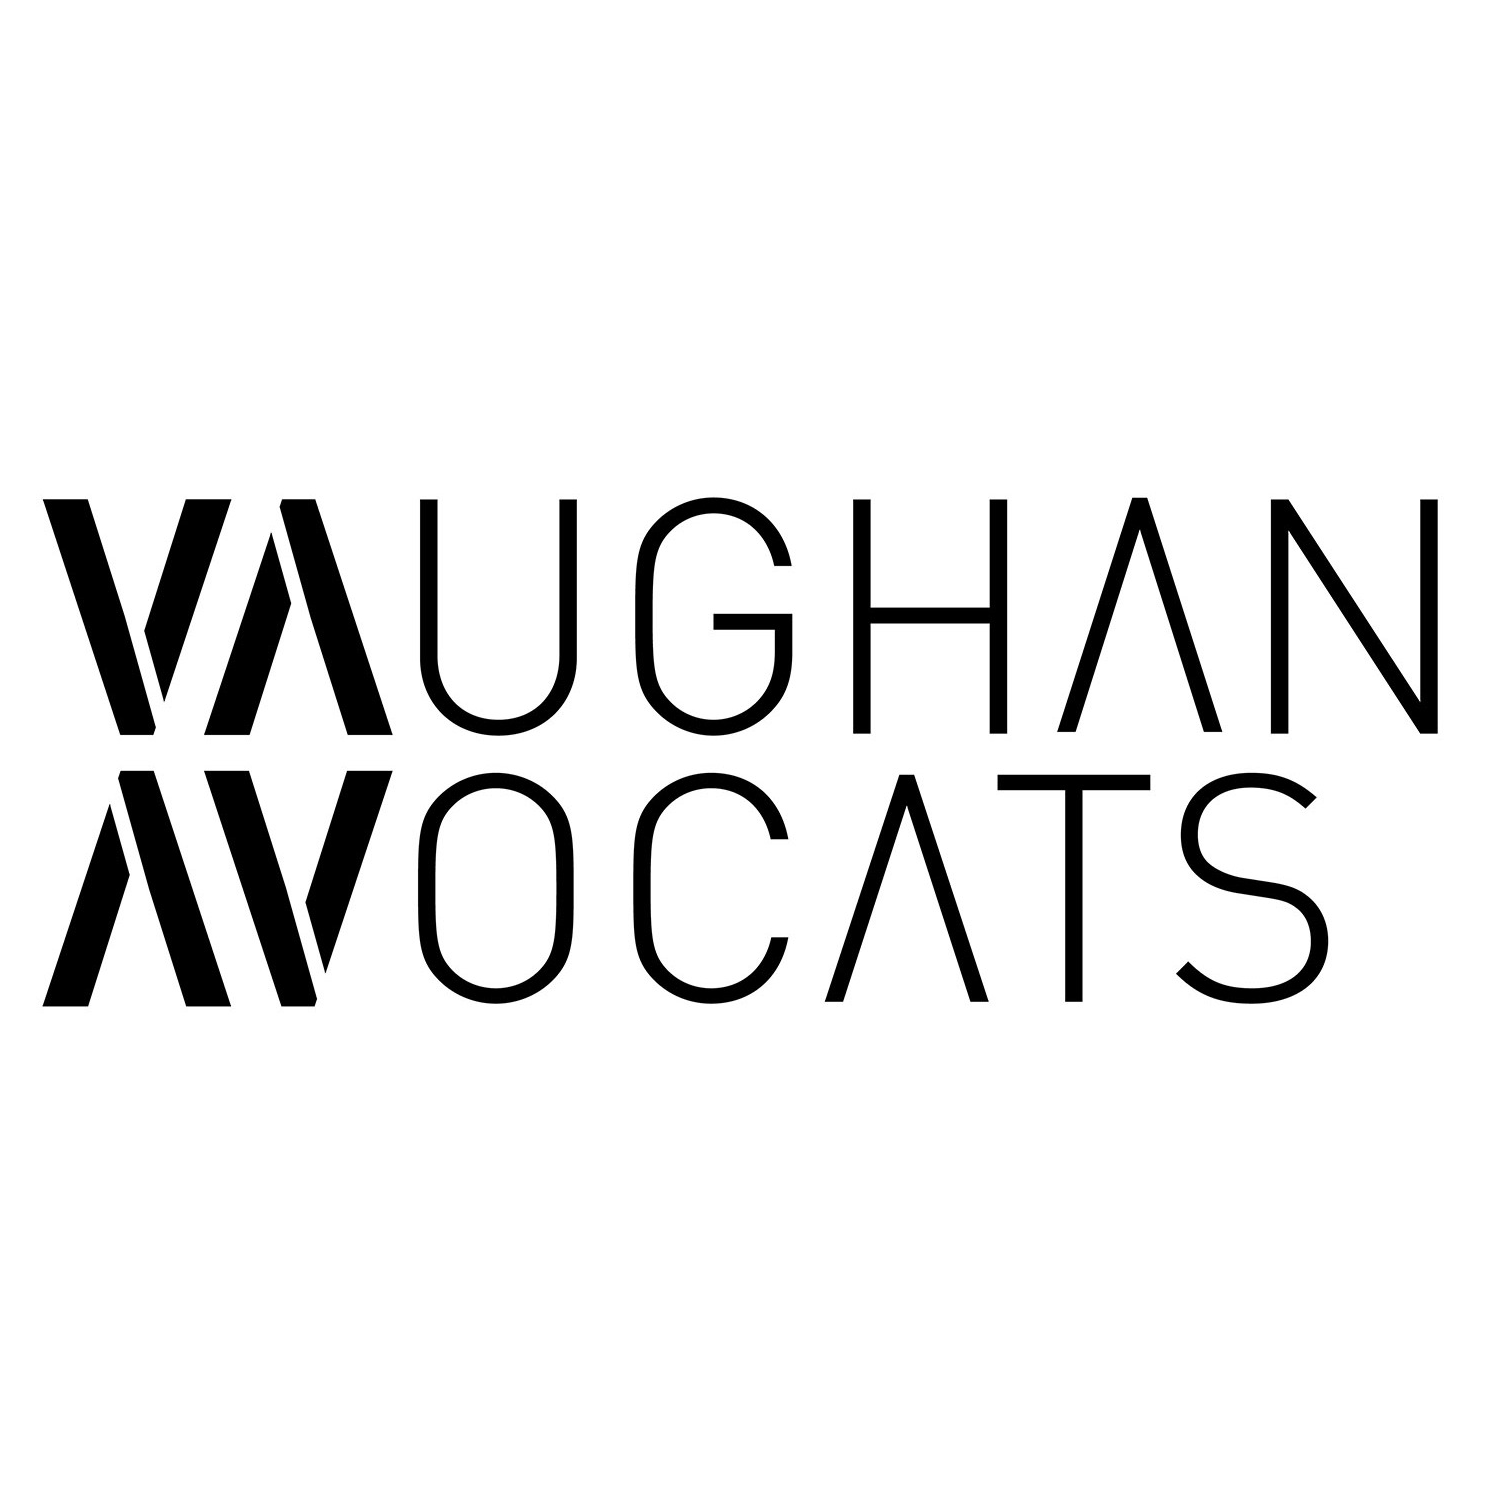 the Vaughan Avocats logo.